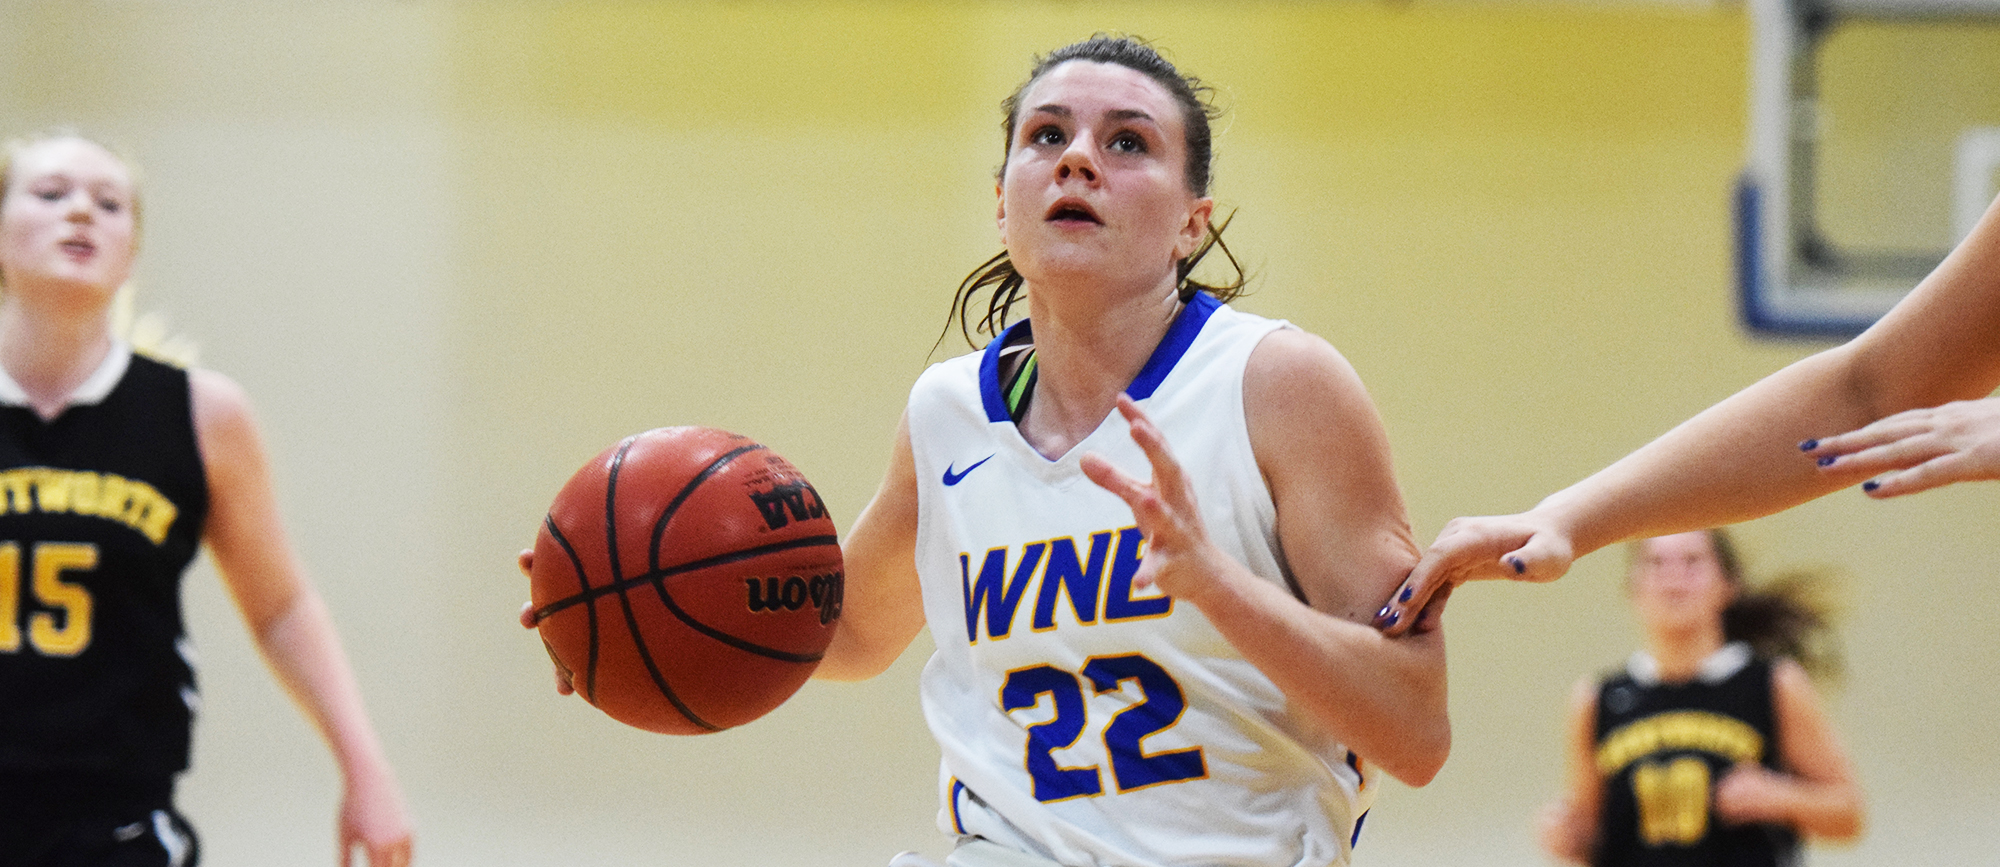 Sophomore guard Emily Farrell recorded 16 points, five assists, four steals and three rebounds in Western New England's 83-57 win over Wentworth on Tuesday night (Photo by Rachael Margossian).